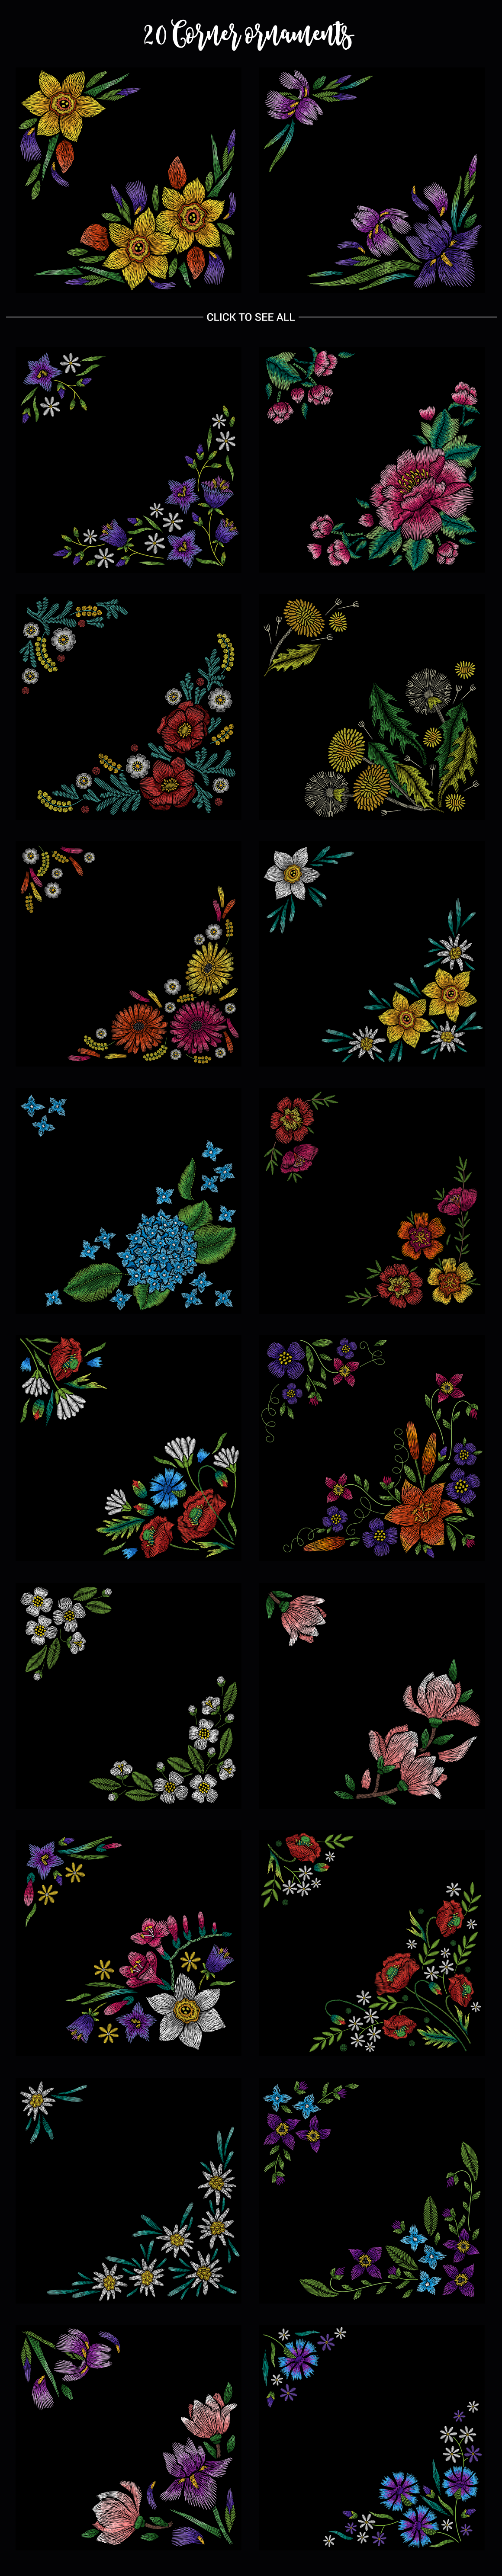 Embroidery Mega Bundle example image 8